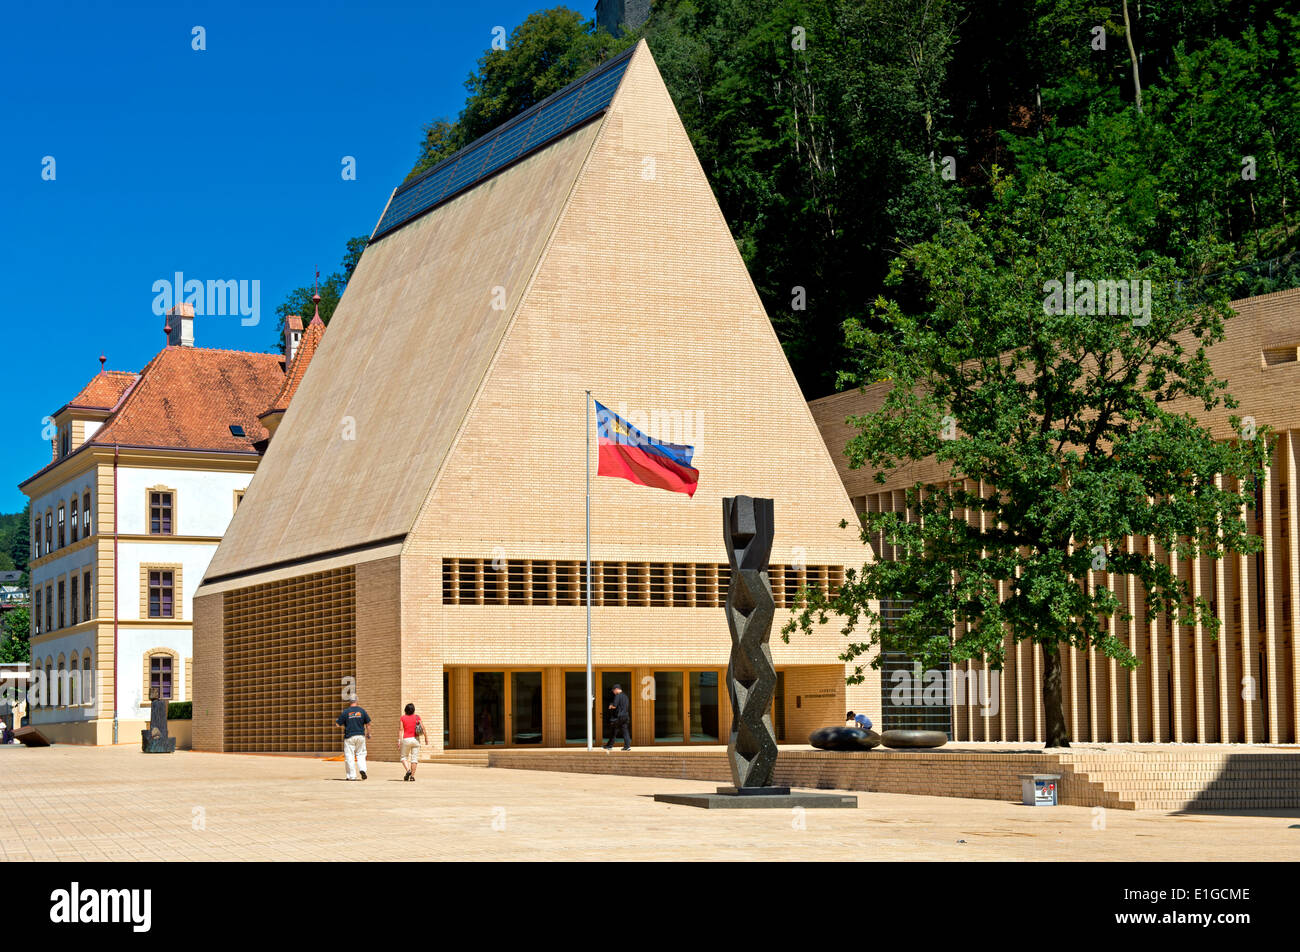 The House of Parliament building in Vaduz, Principality of Liechtenstein, Europe - Stock Image